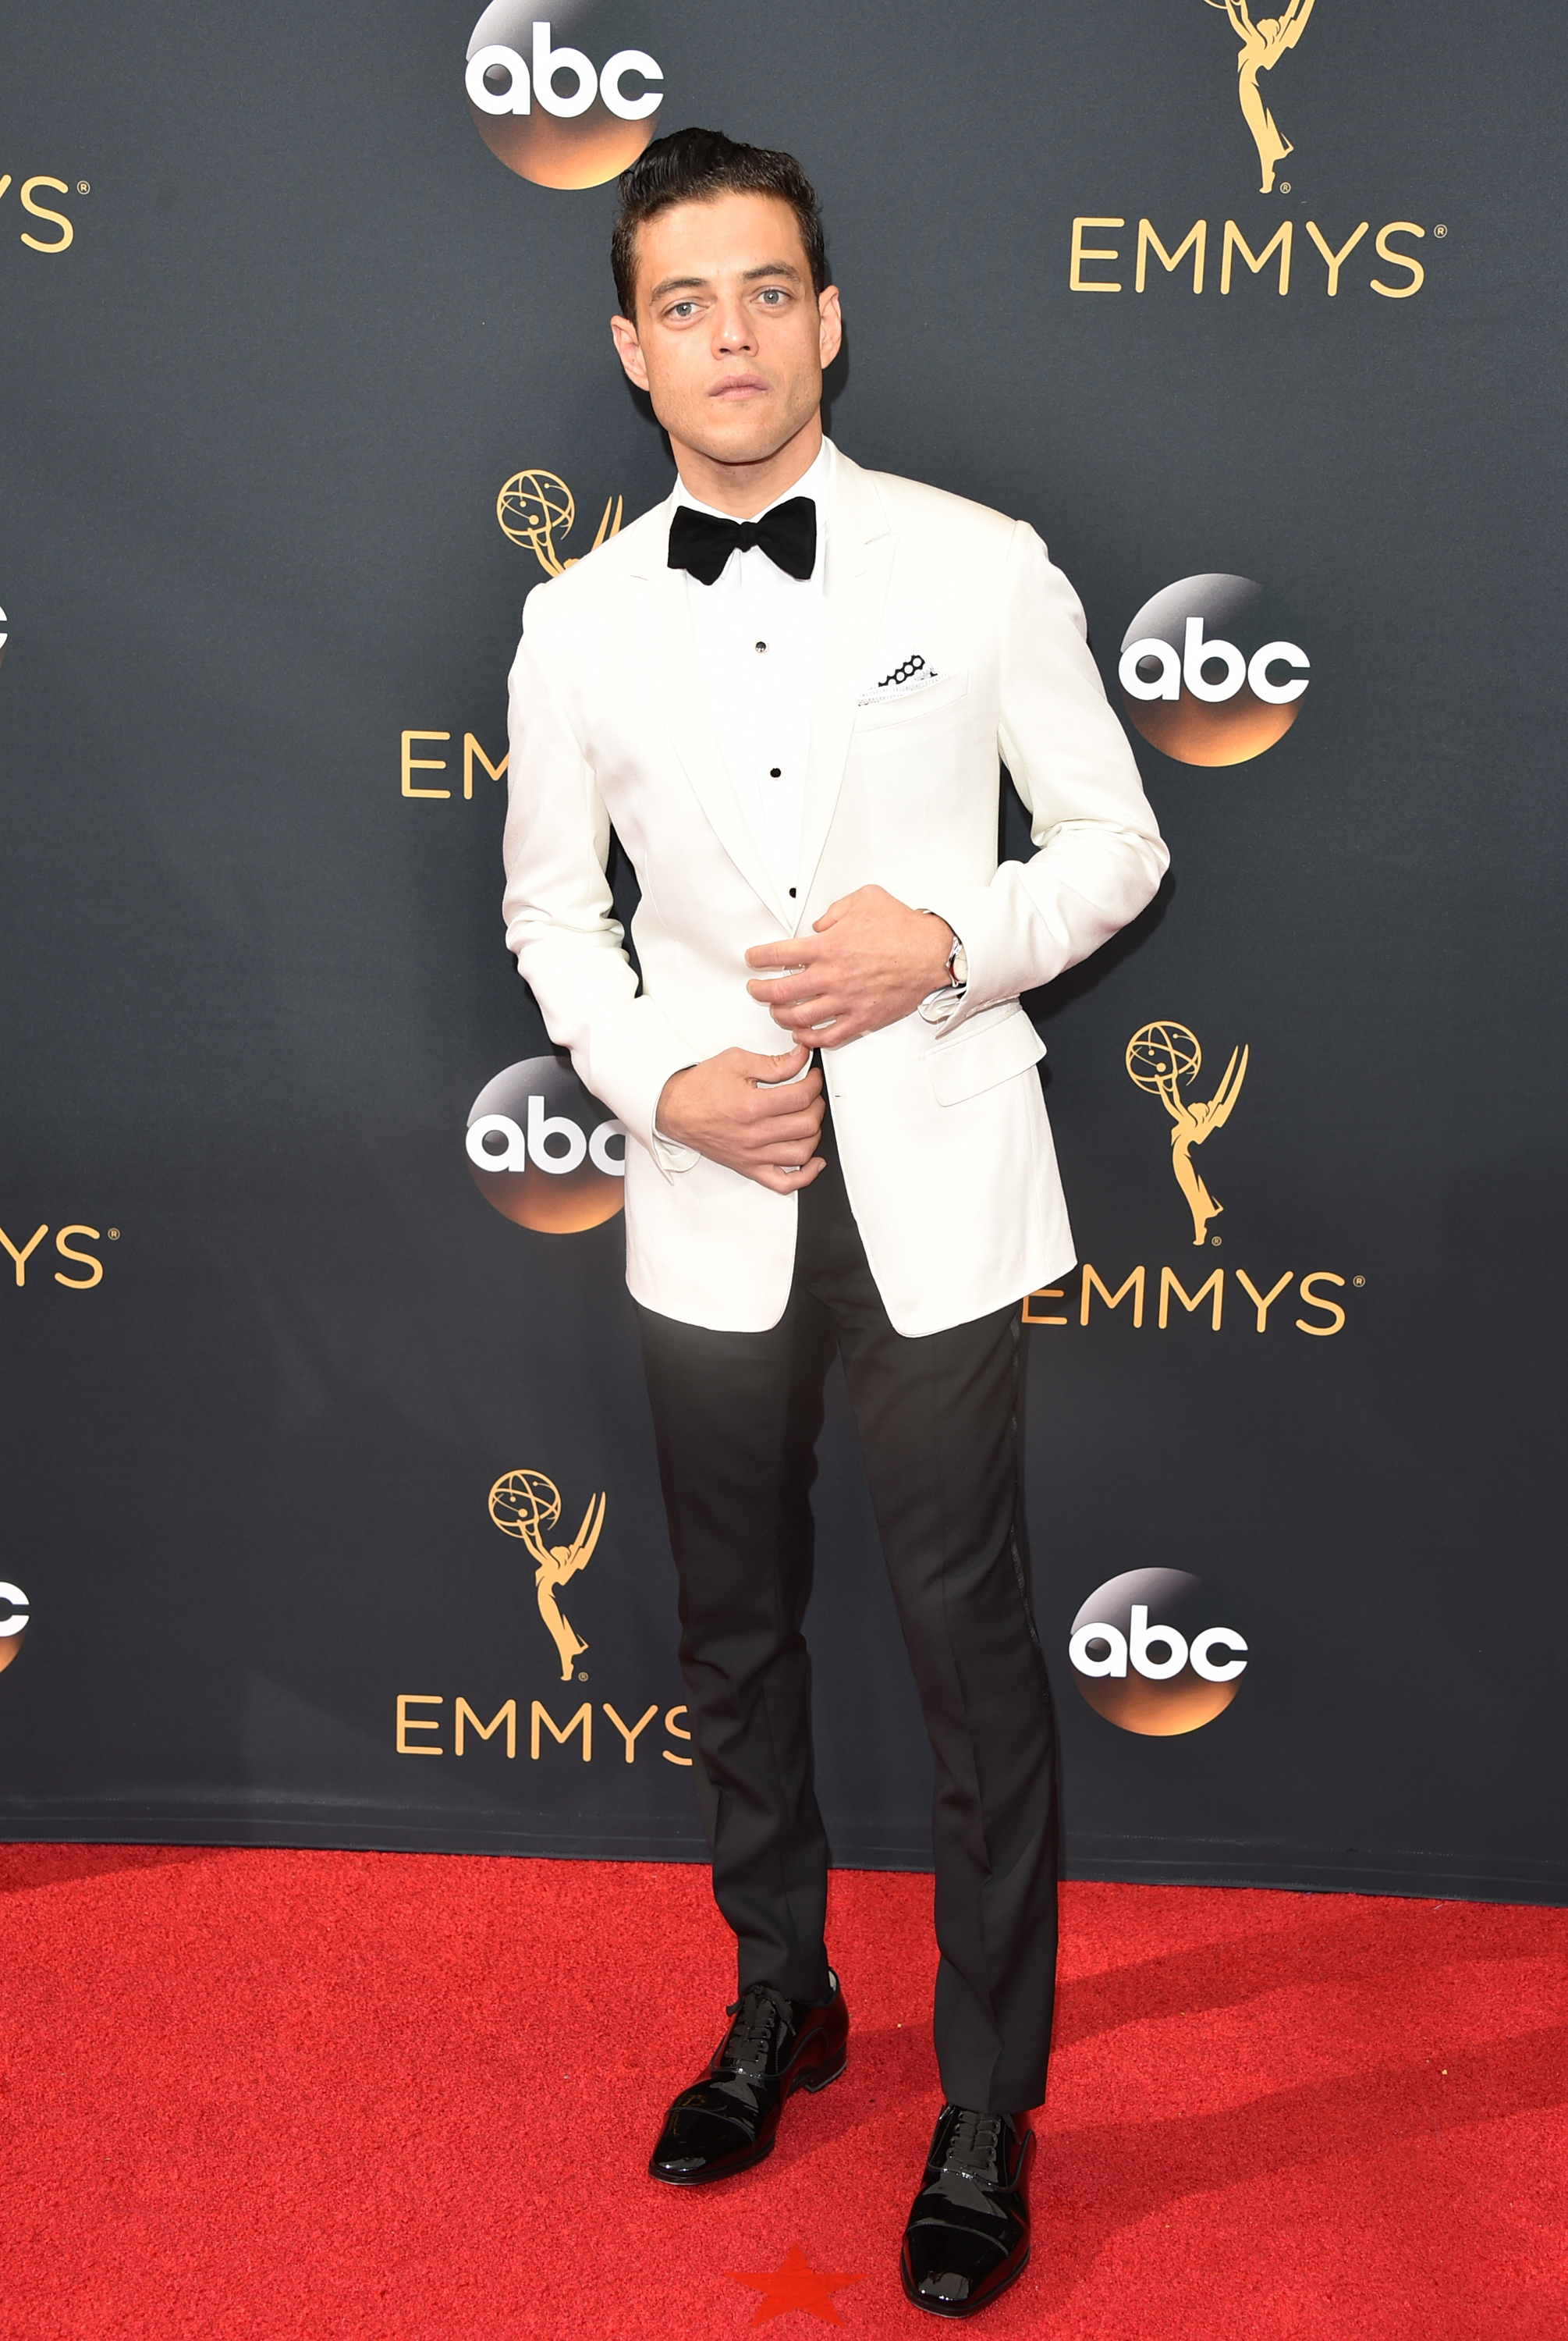 Rami Malek arrives at the 68th Annual Primetime Emmy Awards at Microsoft Theater on Sept. 18, 2016 in Los Angeles.